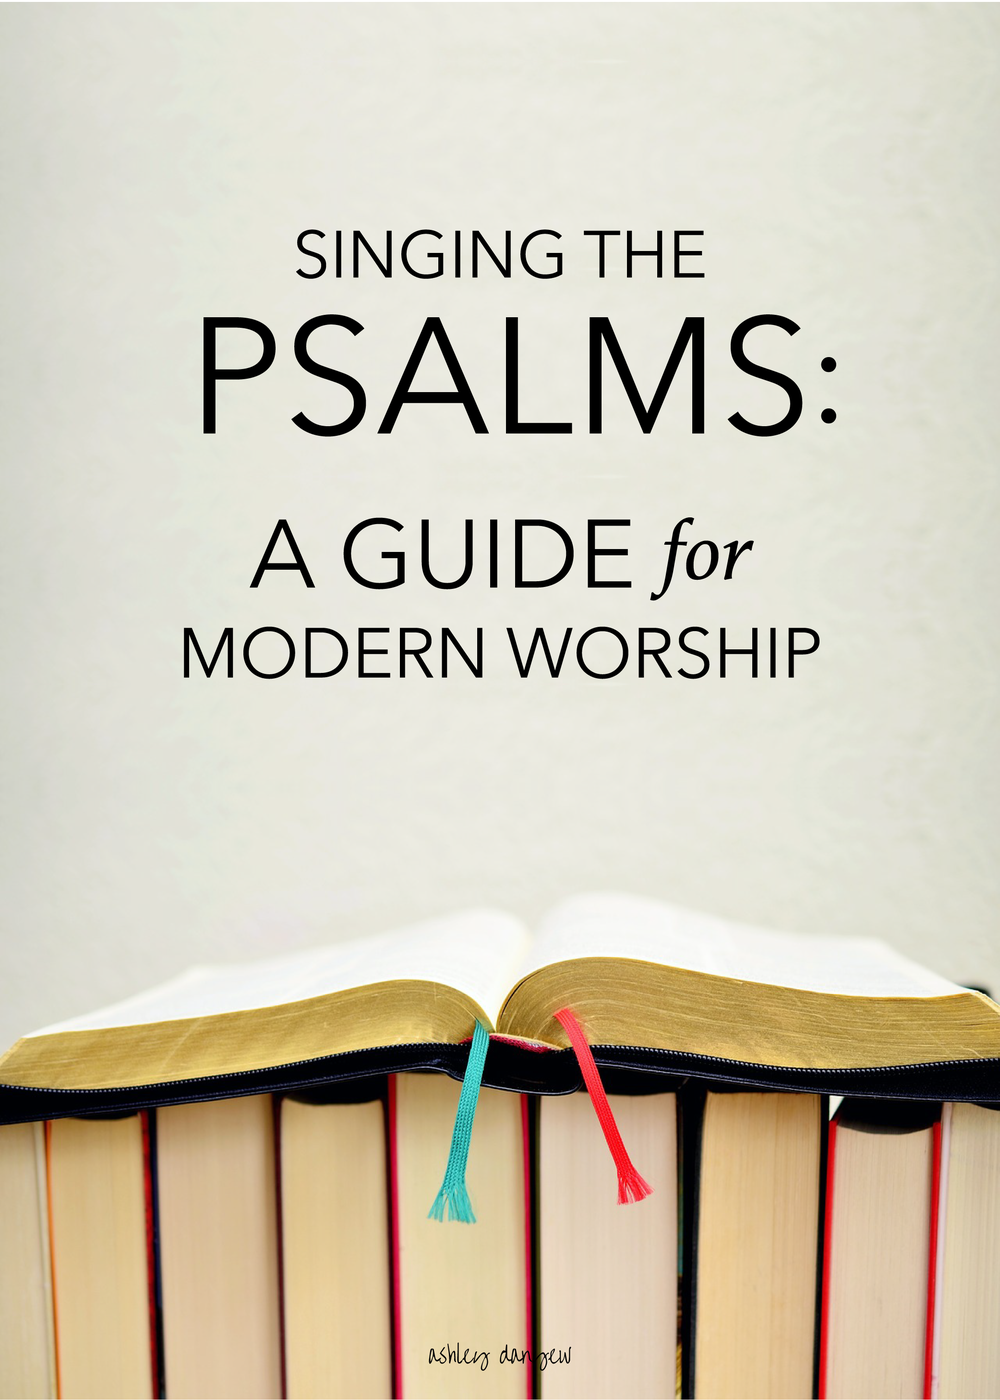 Singing-the-Psalms-A-Guide-for-Modern-Worship-01.png